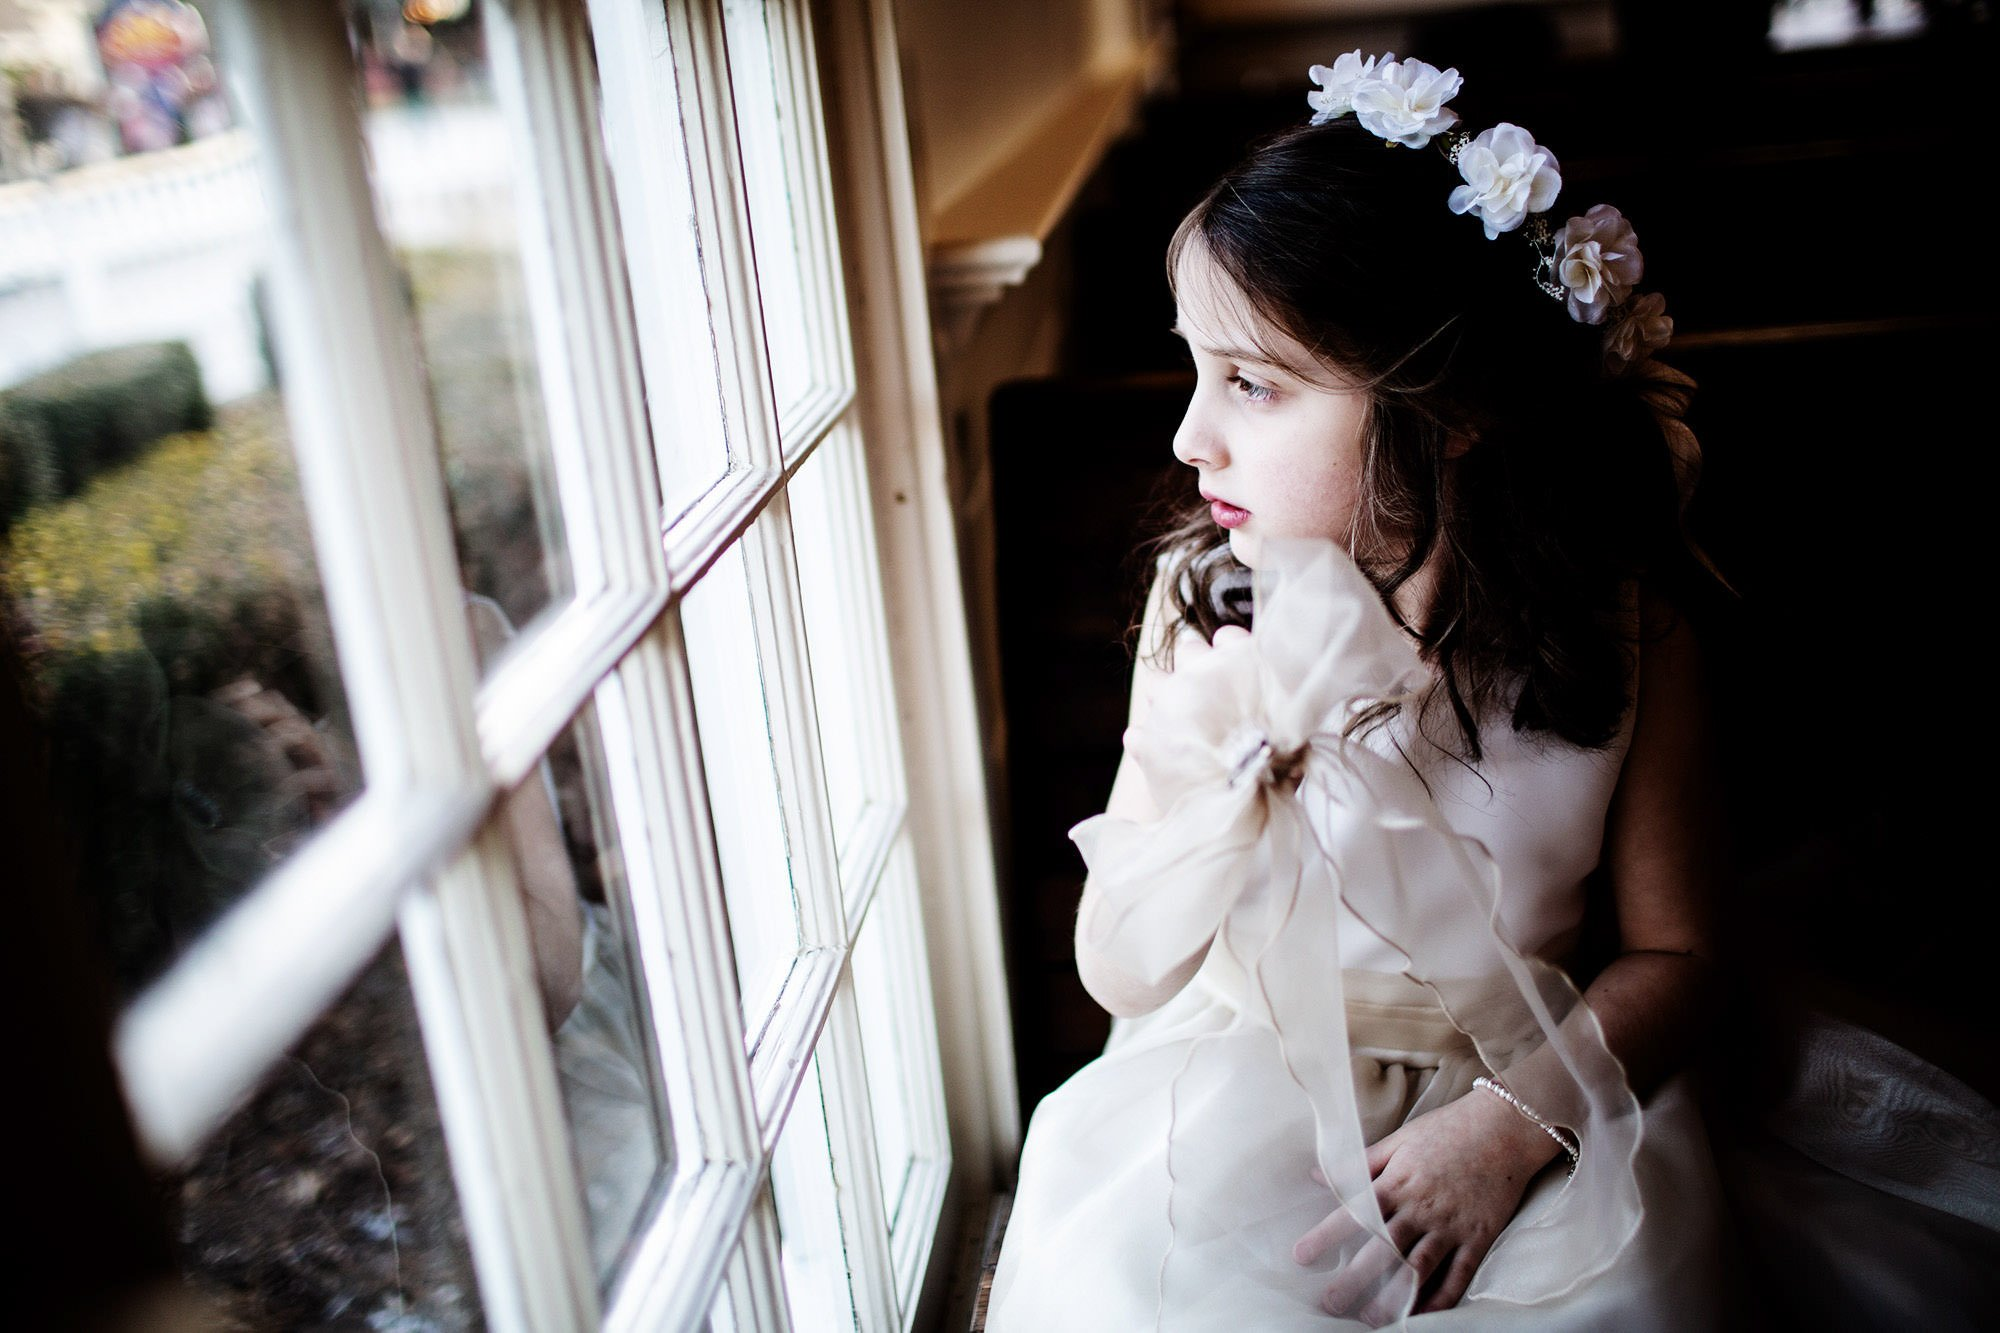 A flower girl during the wedding ceremony.